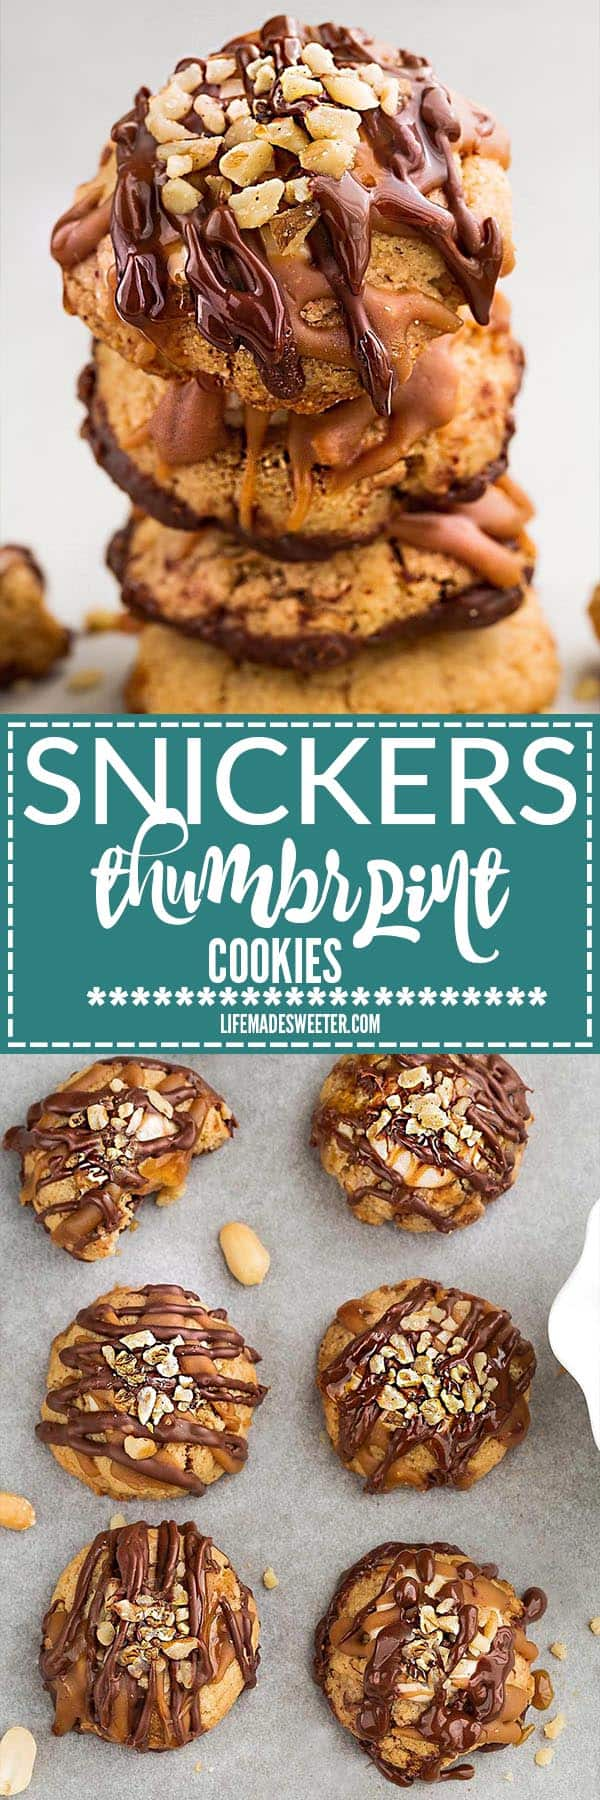 Snickers Thumbprint Cookies make the perfect addition to your holiday cookie batter. Best of all, it's so easy to make with a 3 ingredient soft and chewy peanut butter cookie, a marshmallow gooey nougat filling and a drizzle of melted chocolate and caramel with chopped peanuts sprinkled in the center.